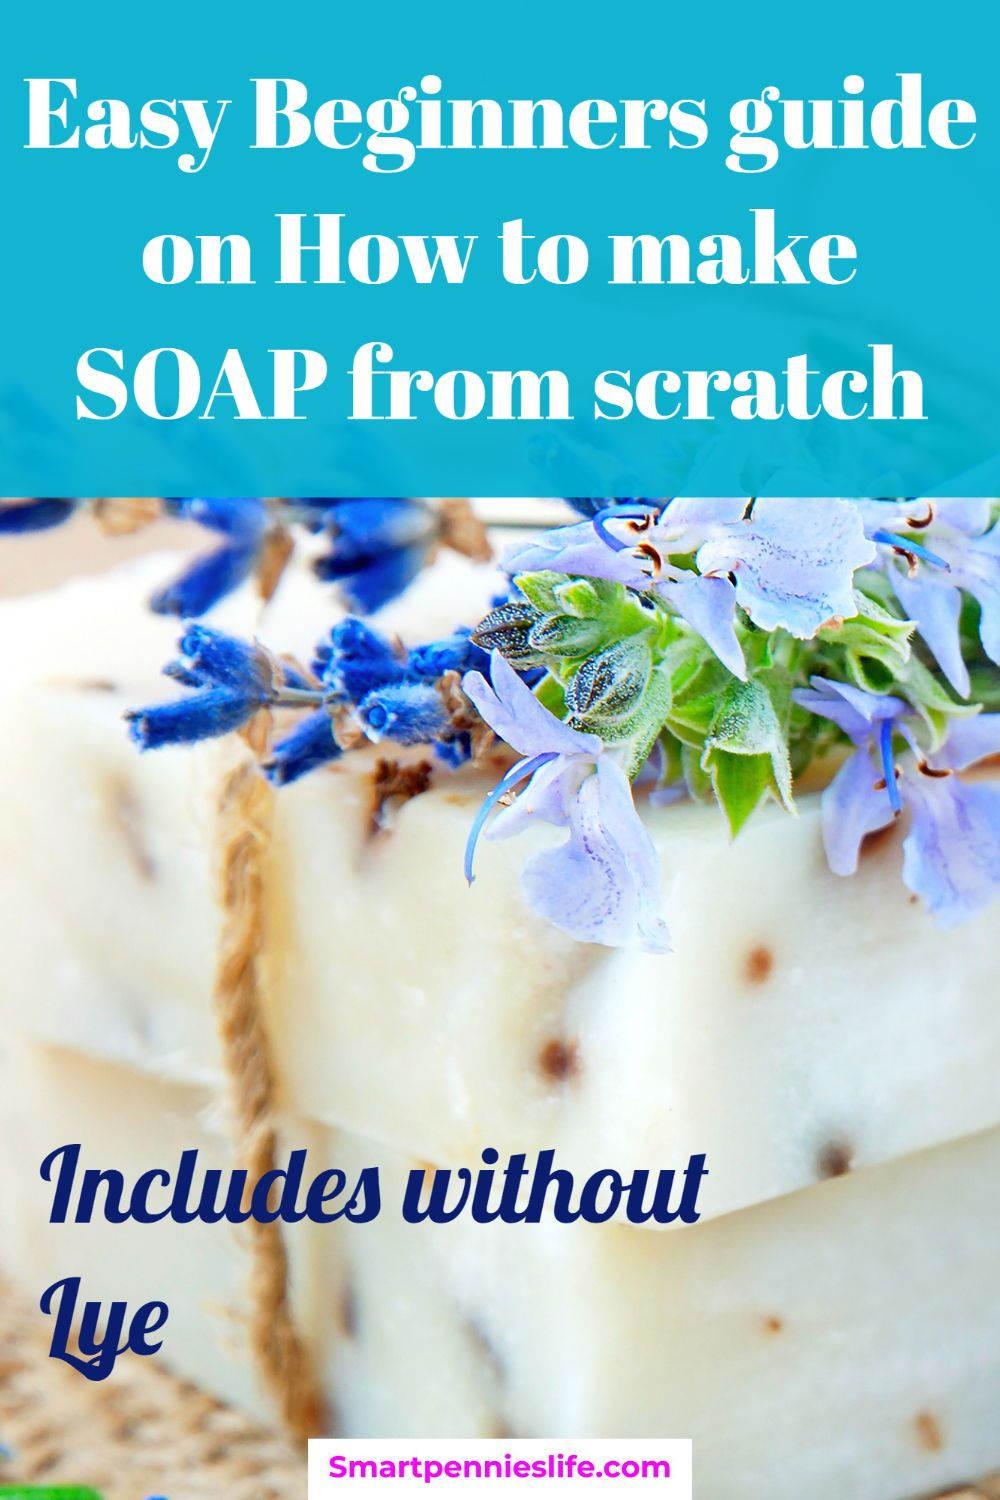 How to make soap includes without lye